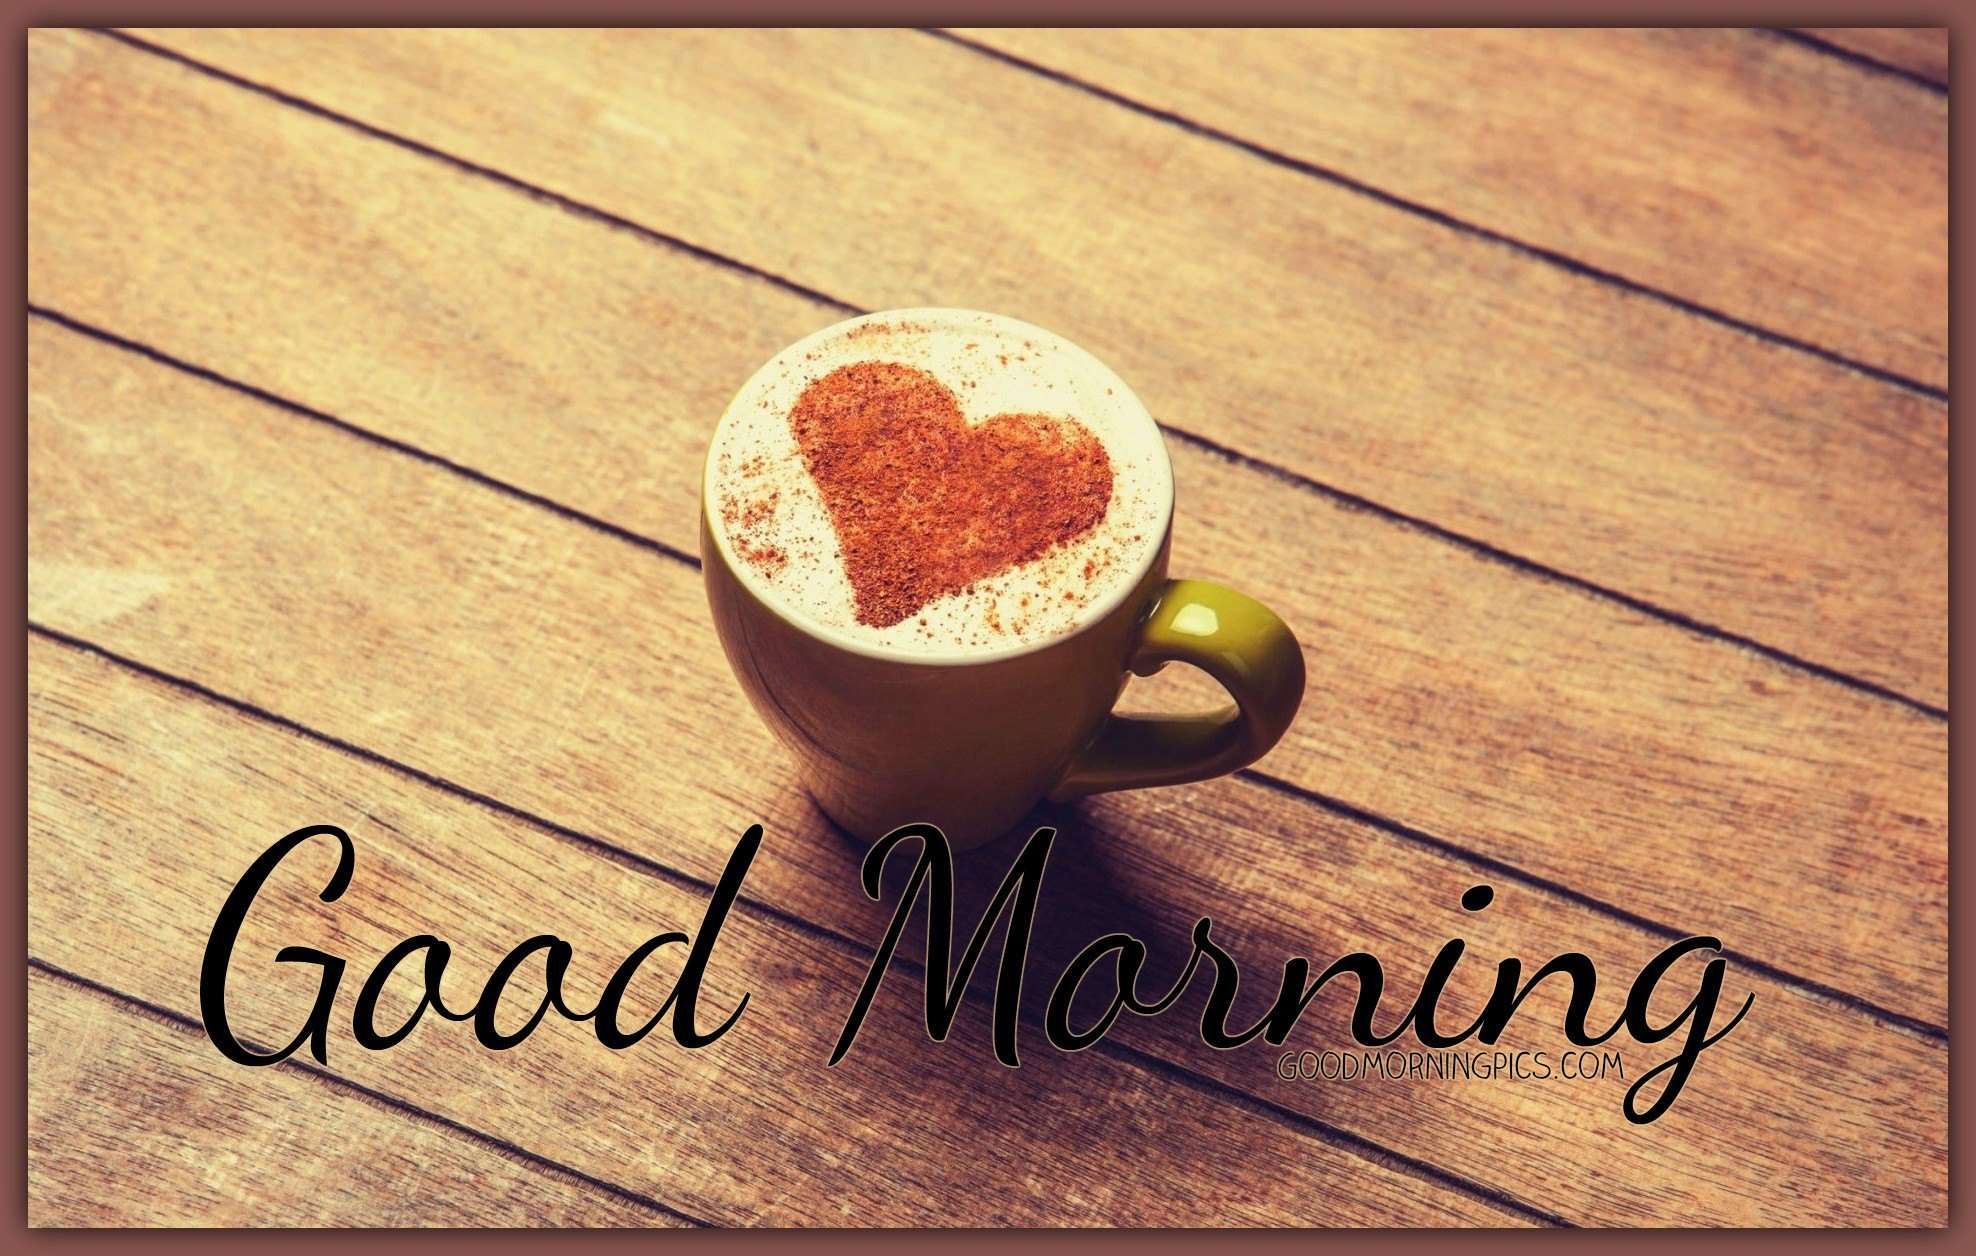 Love Good Morning Image Wallpaper : Good Morning love coffee and quote goodmorningpics.com